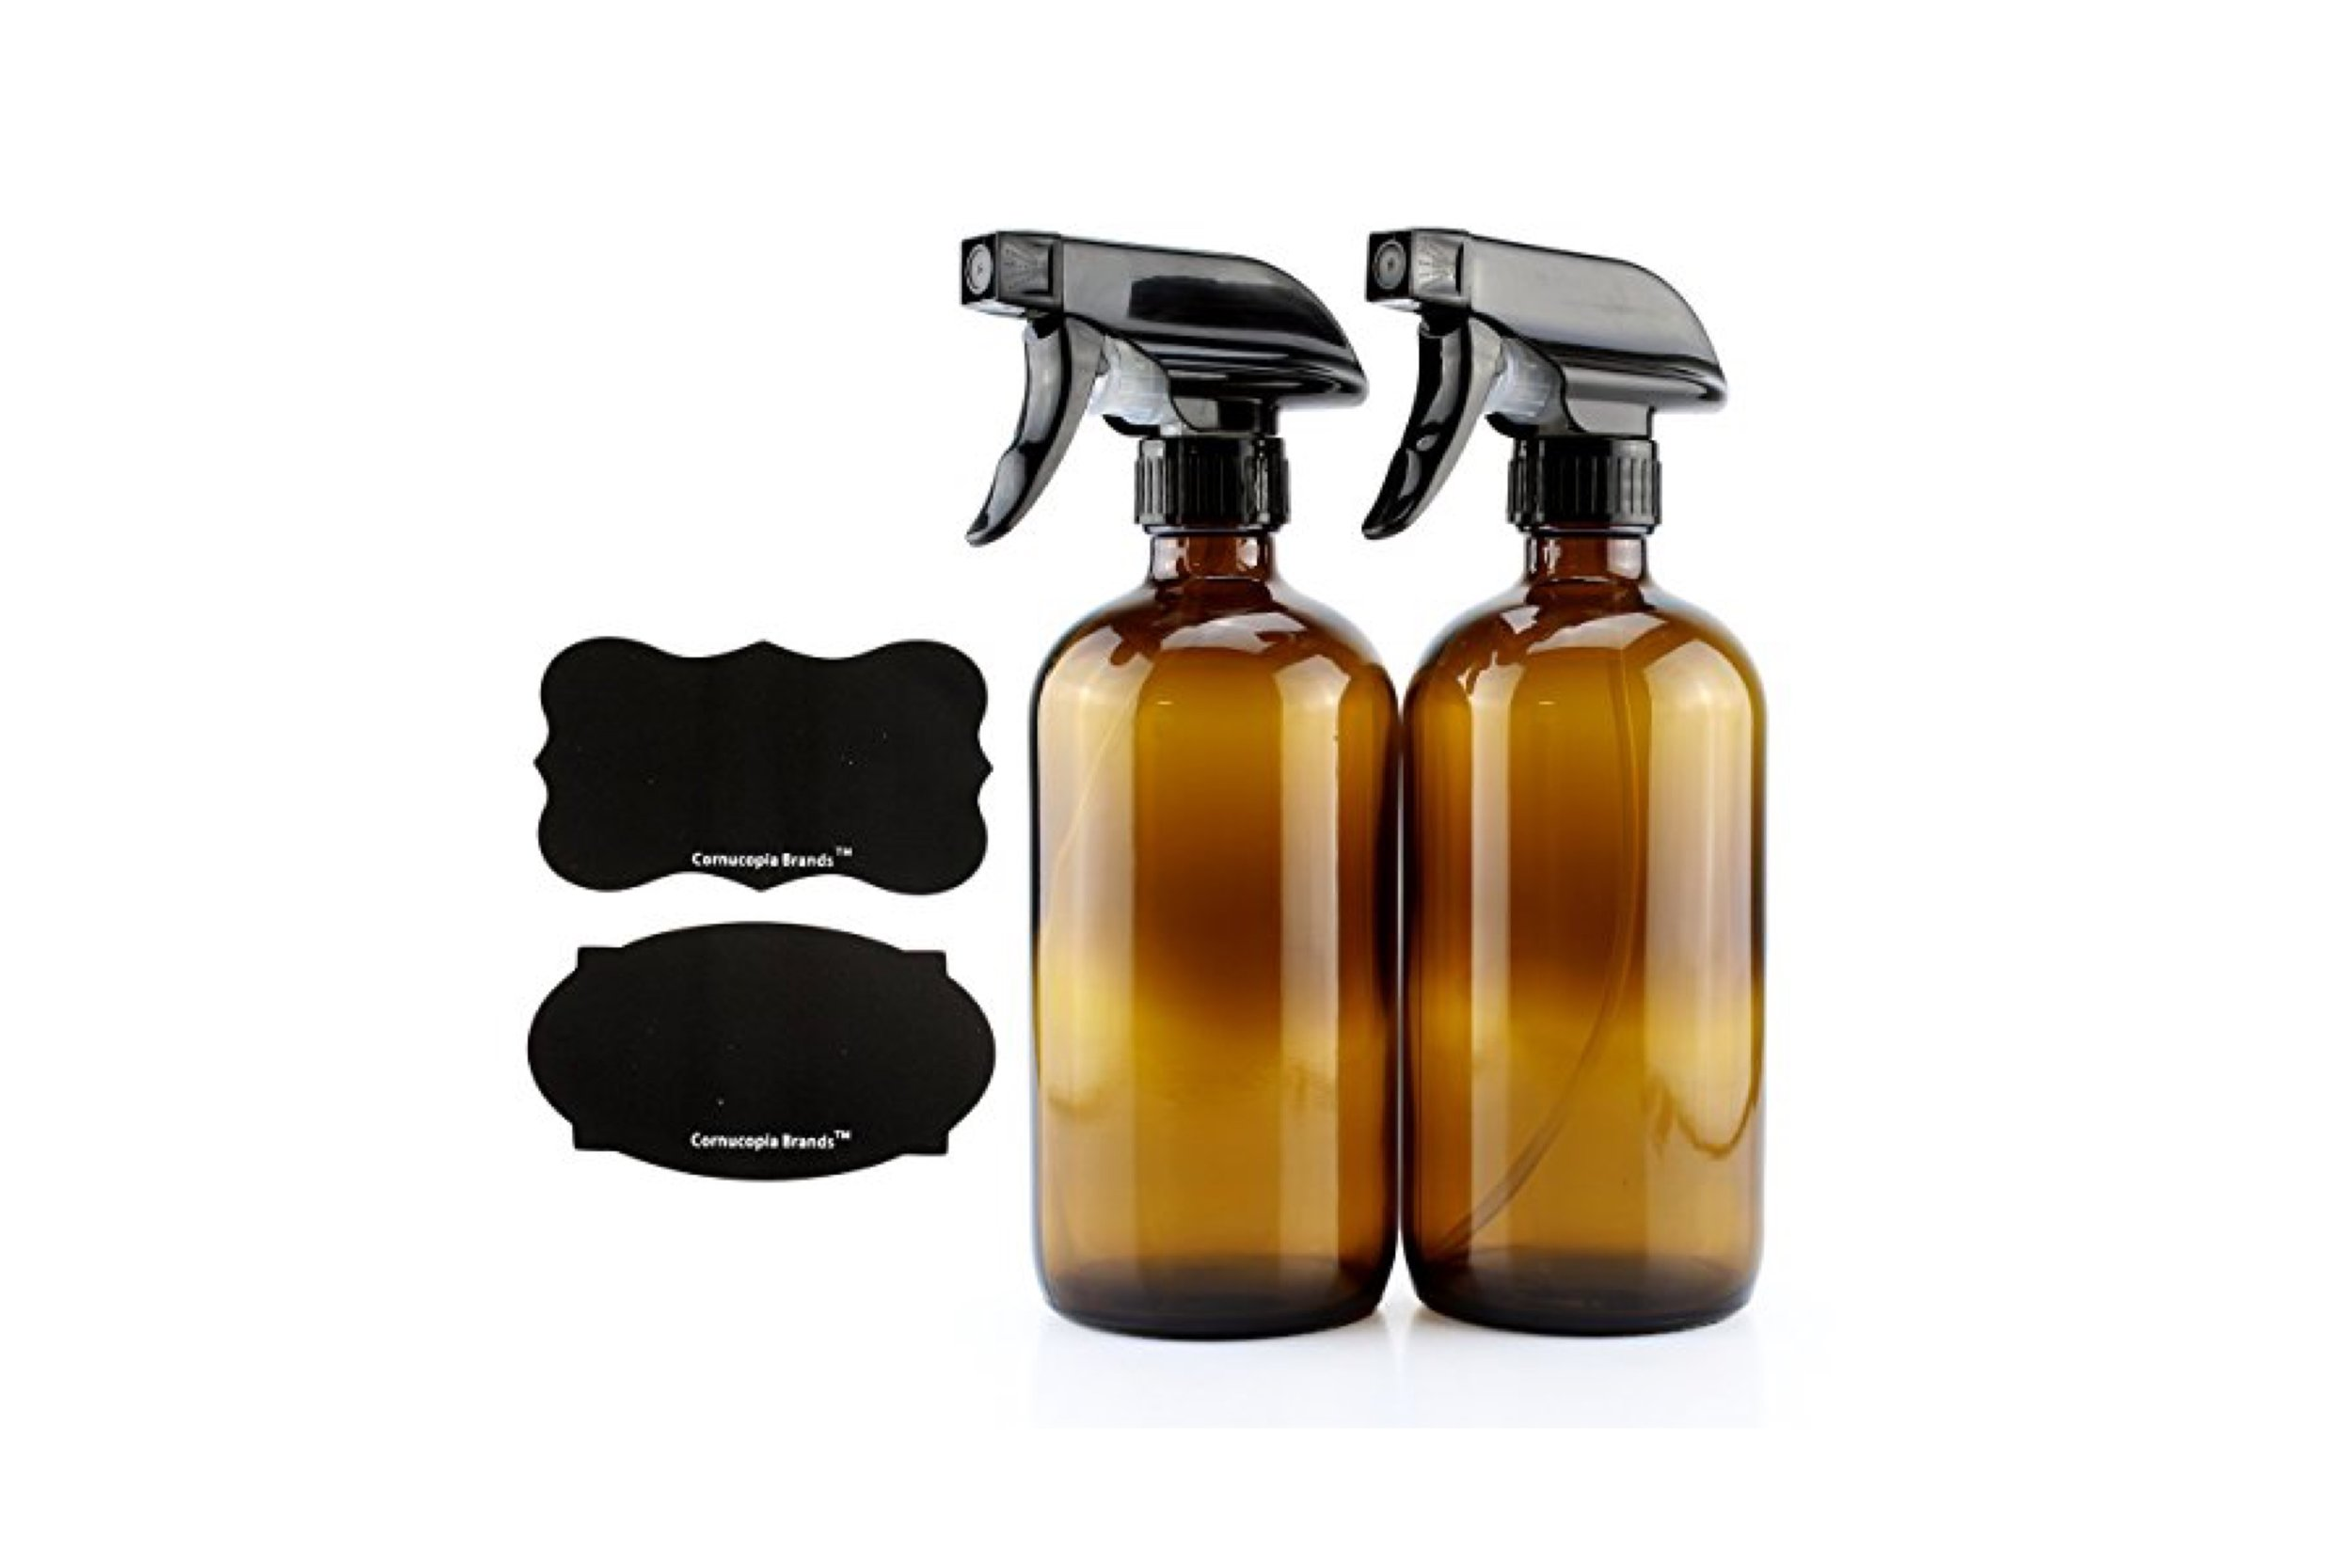 16-Ounce Amber Glass Spray Bottles w/Reusable Chalk Labels (2 Pack), Great for Essential Oils